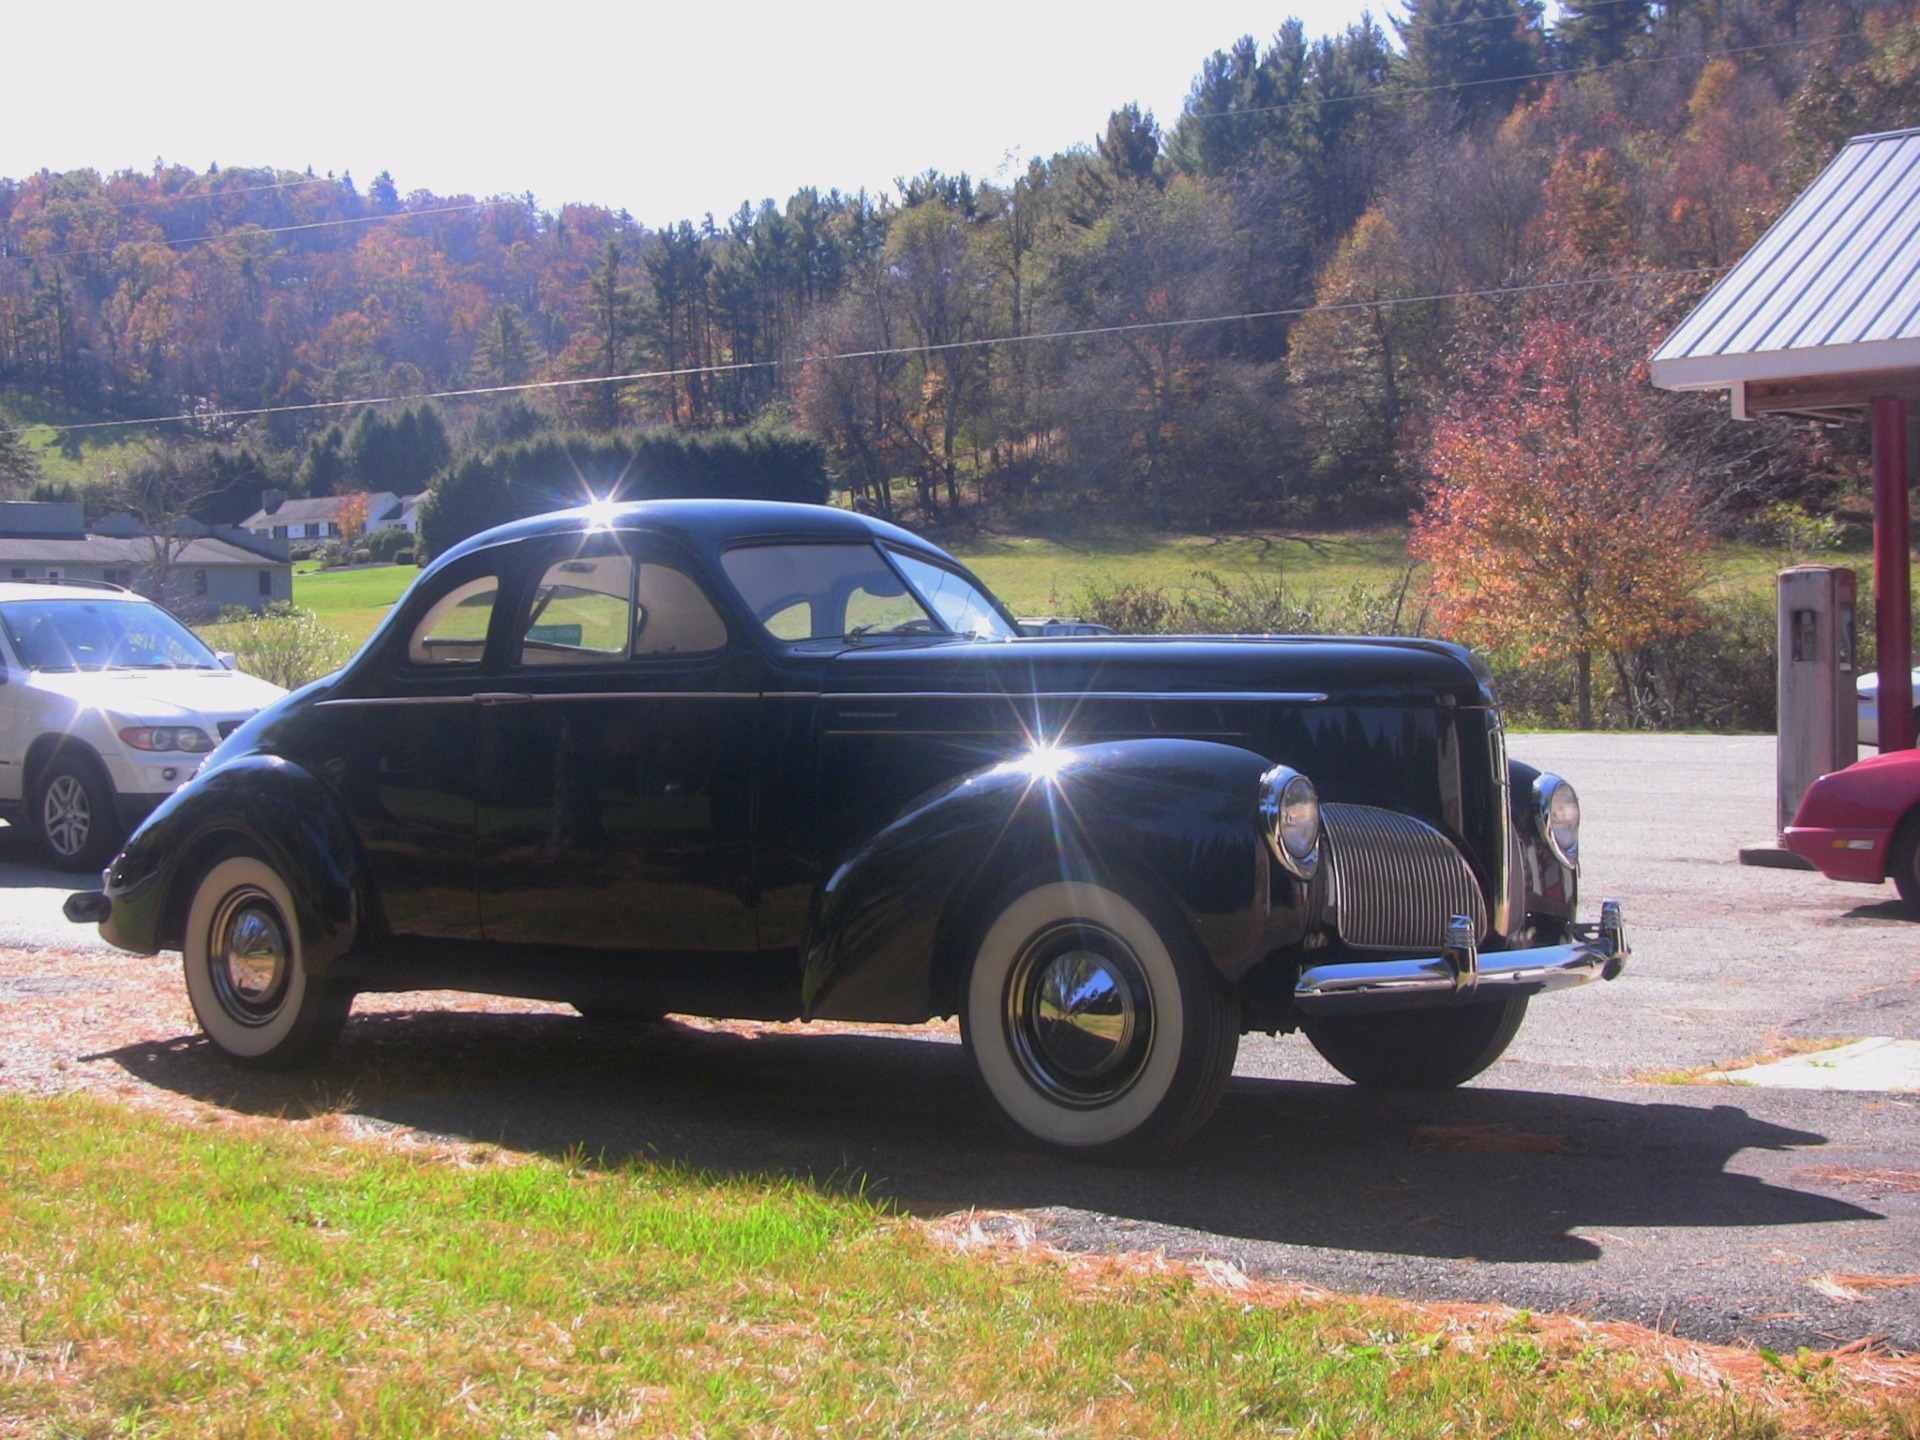 used 1940 studebaker president for sale   26 000